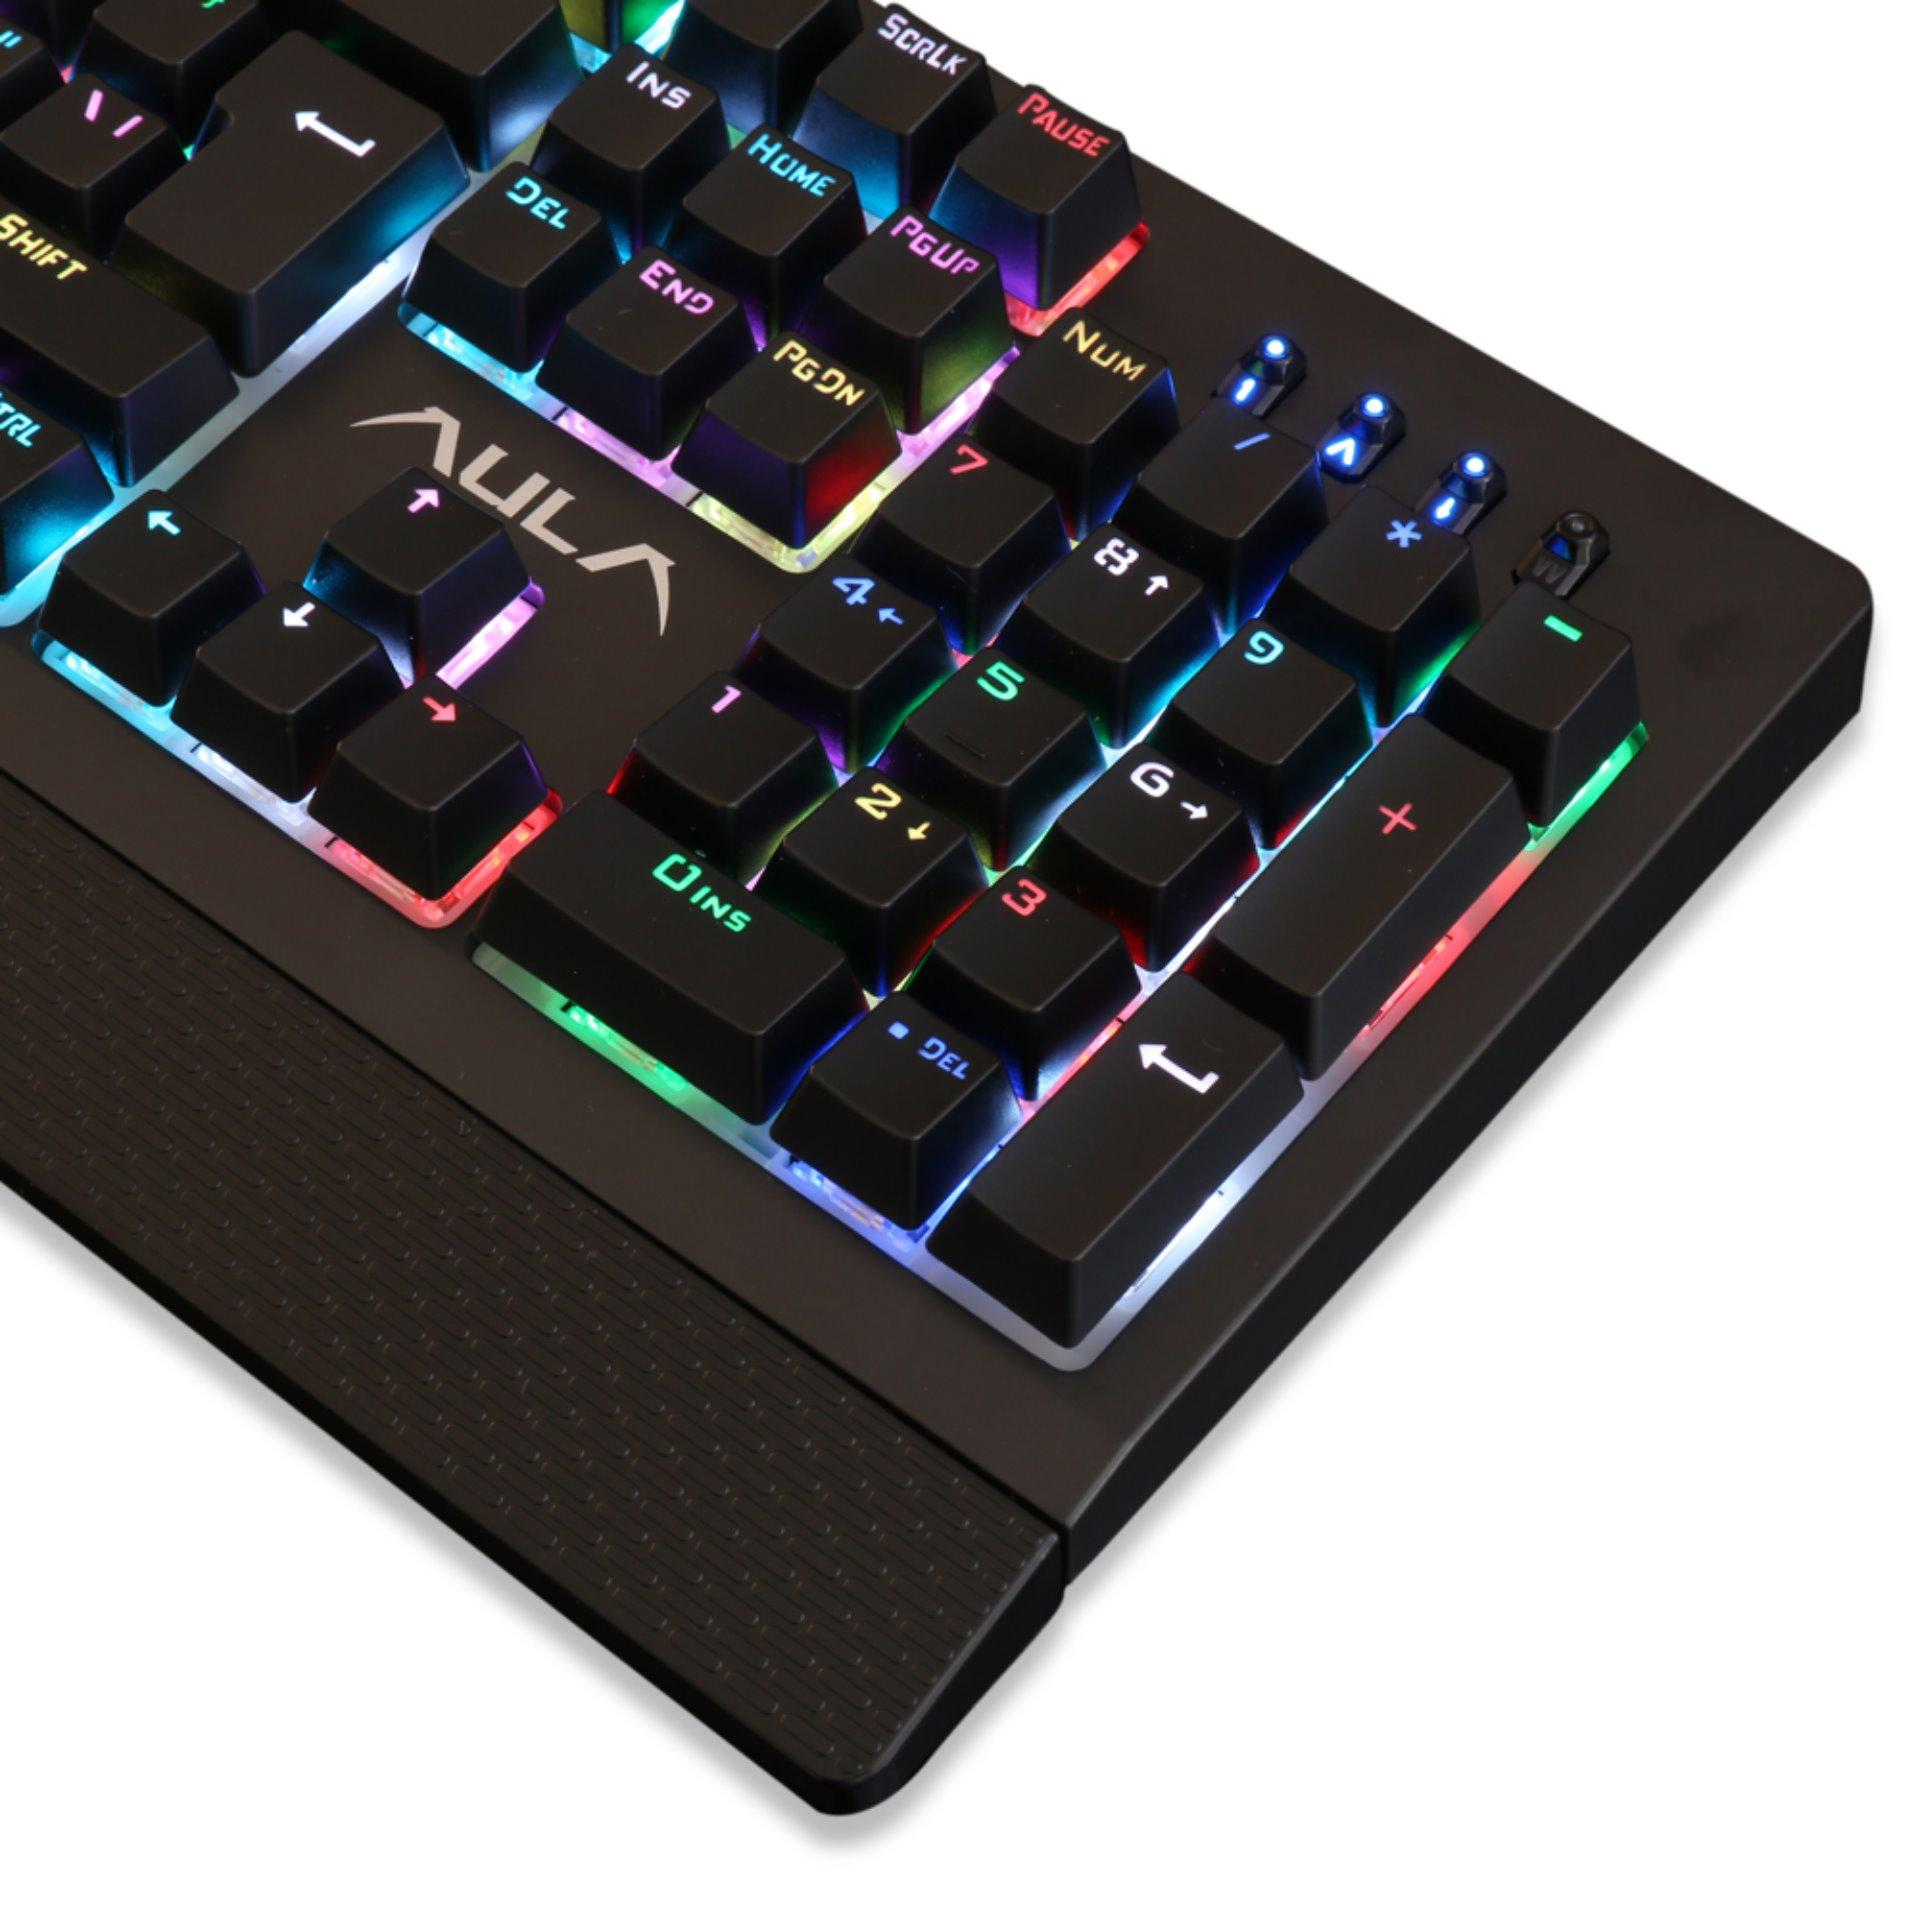 Corsair Strafe Rgb Gaming Mechanical Keyboard Brown Switch Hitam K70 Lux Red Aula Official Wings Of Liberty 104keys Multicolors Led Backlit Blackblue